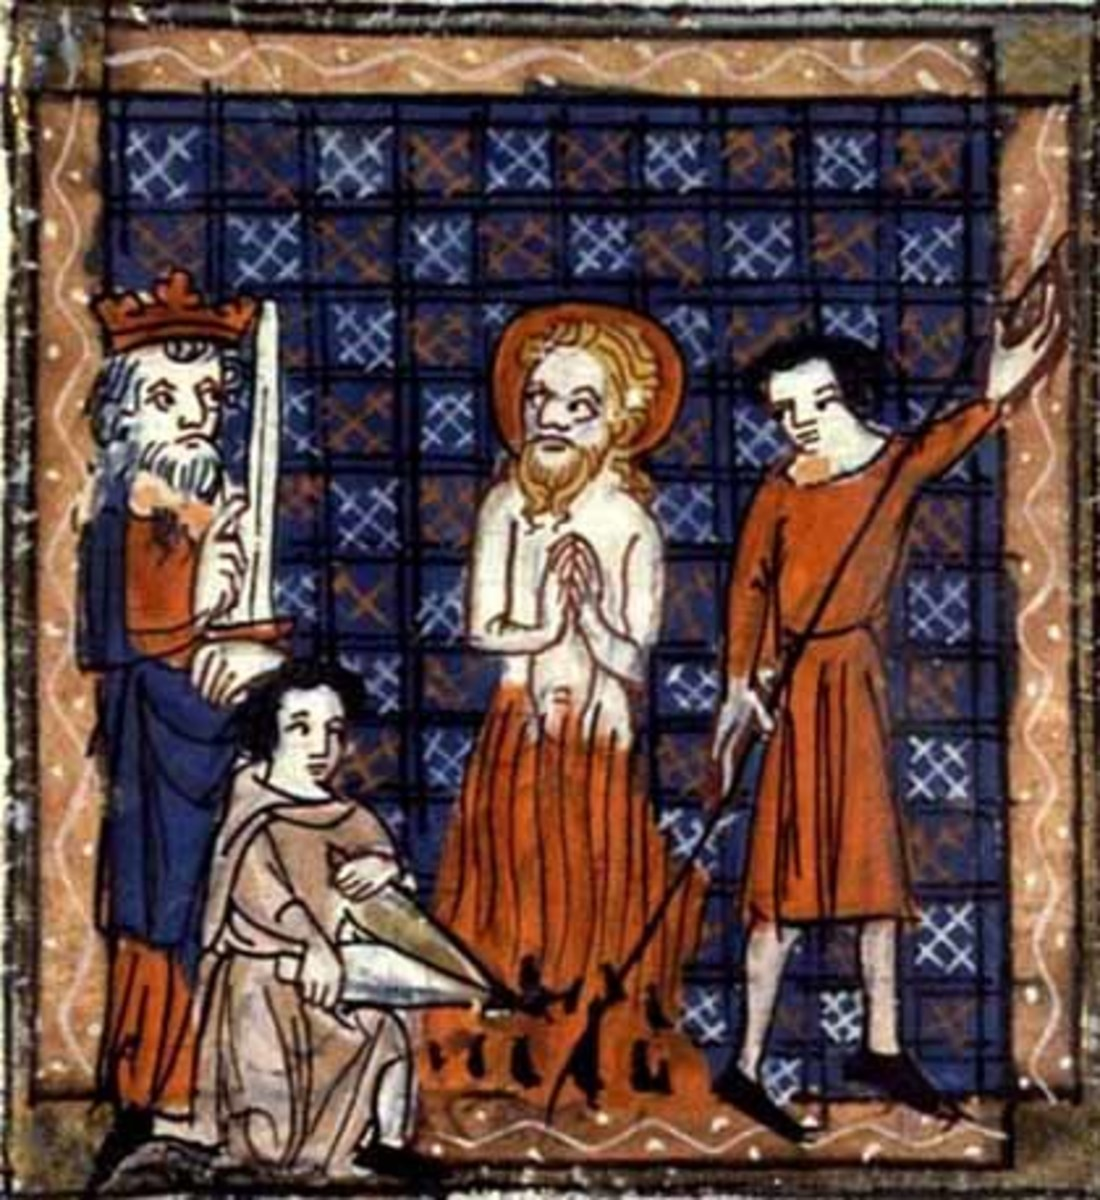 The Martyrdom of Saint Barnabas.